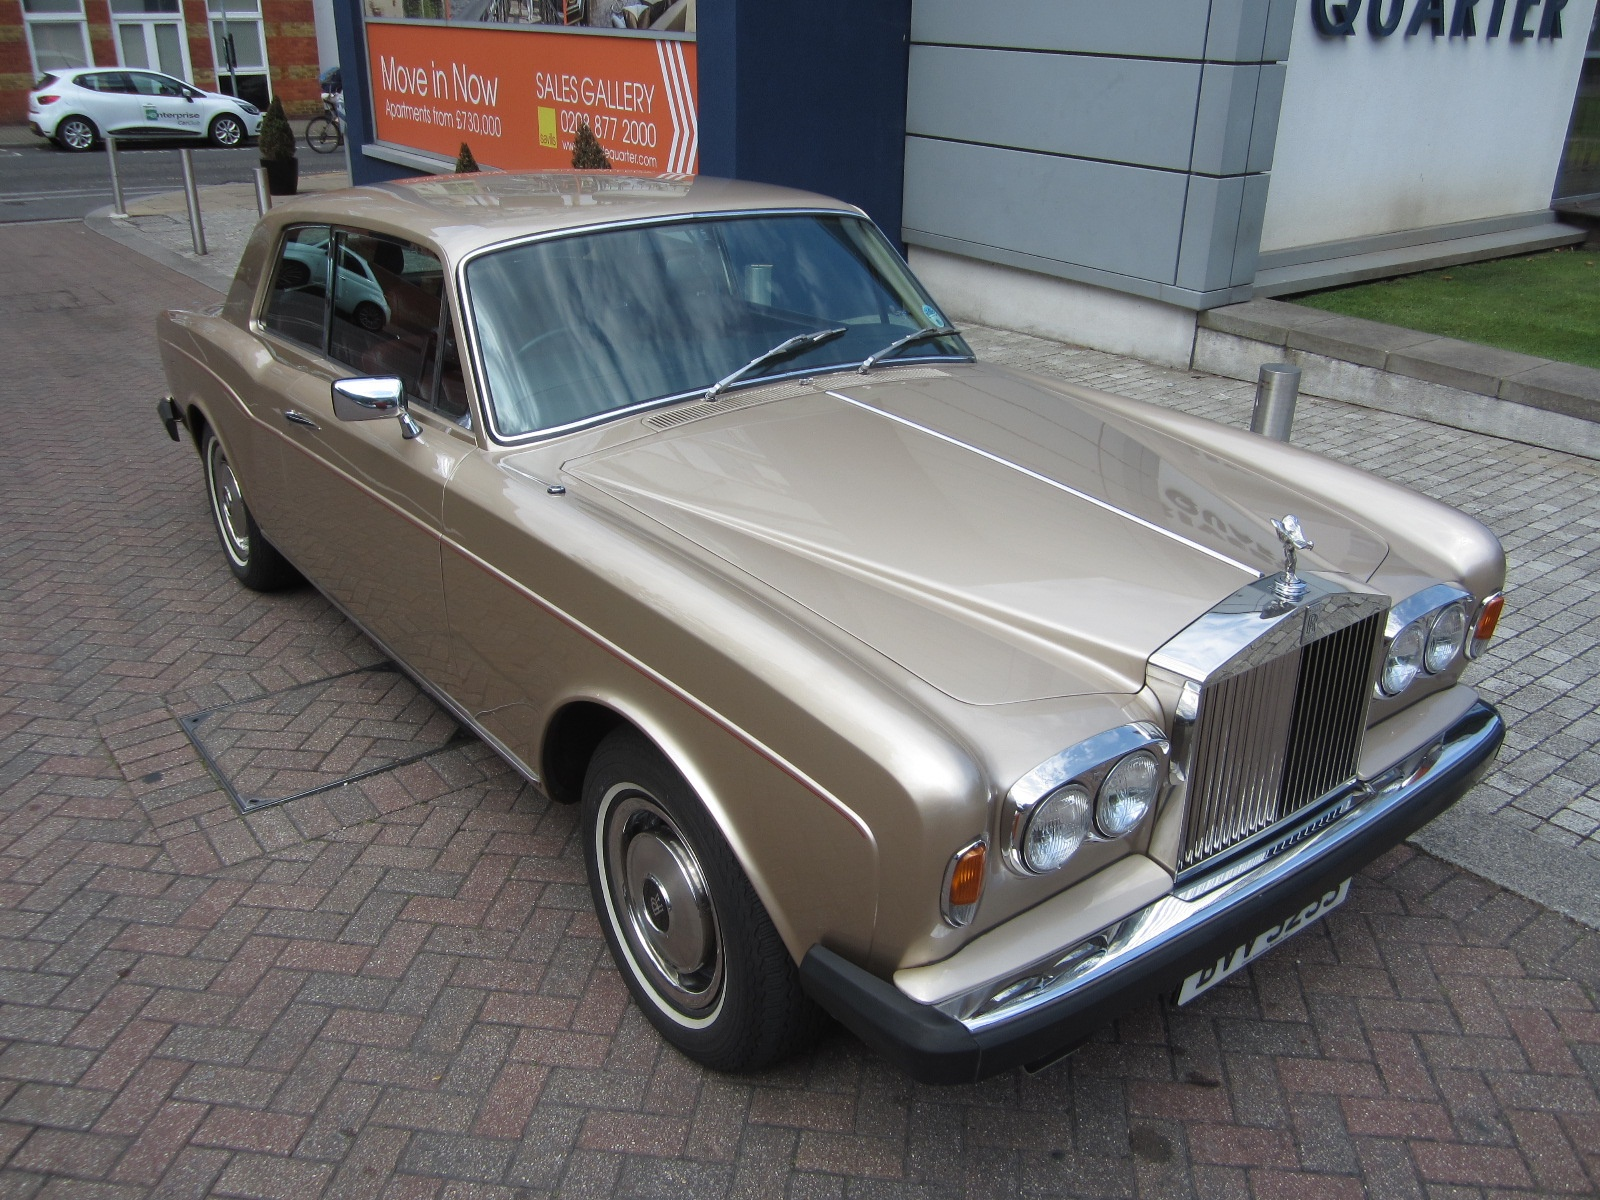 1978 Rolls Royce Corniche I Vintage Car For Sale